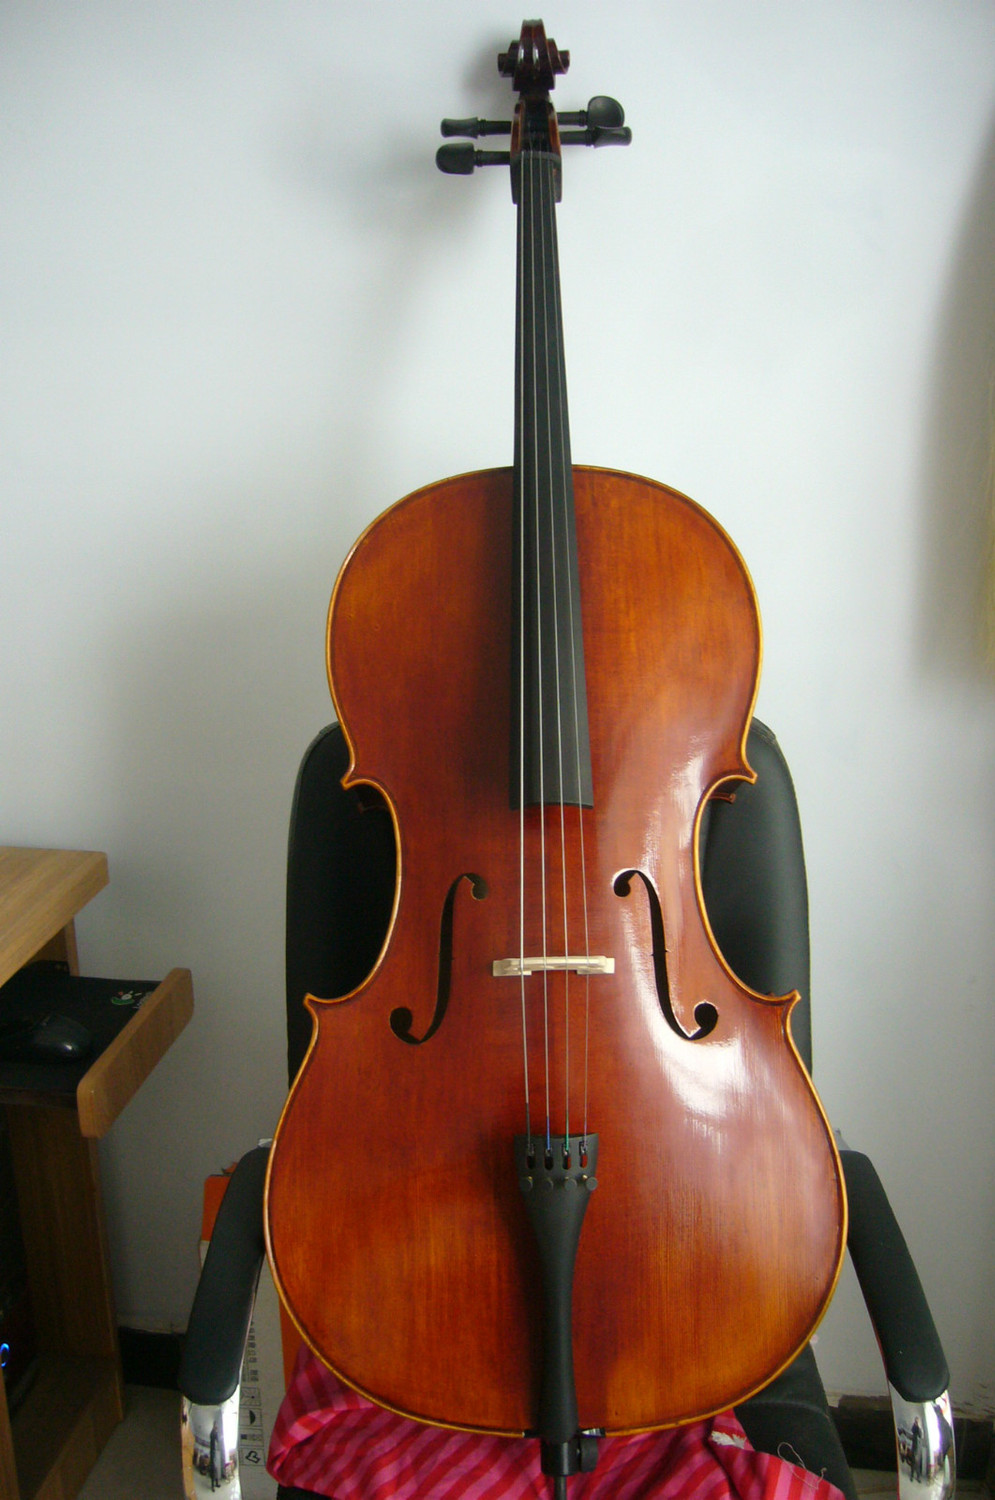 Us 1299 0 Cello Professional 4 4 Size Cello Bright Open Tone Stringed Instrument In Cello From Sports Entertainment On Aliexpress